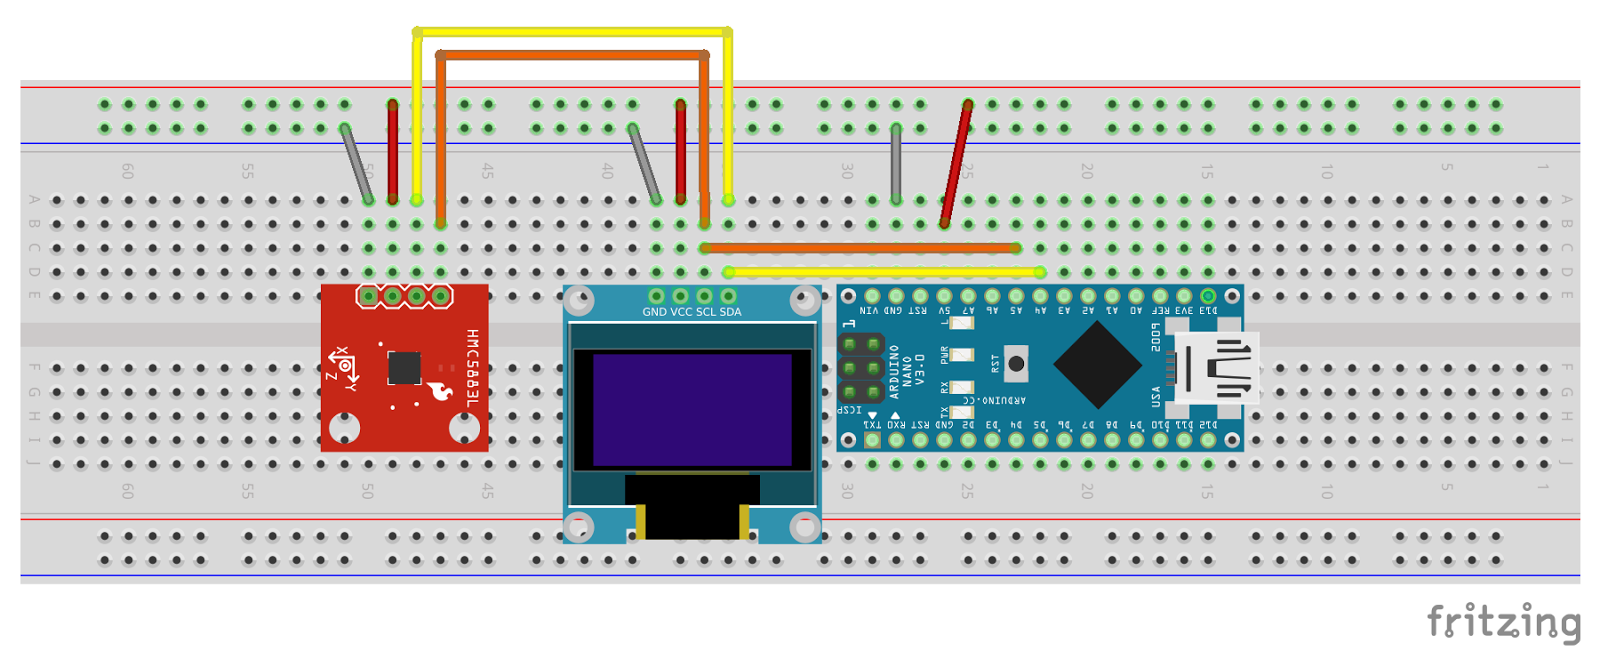 Example Of Electronic Circuit Design This Show A Arduino Nano Connect With Gy 271 Digital Compass Module And 096 128x64 Oled Via Common I2c Bus Is Digita